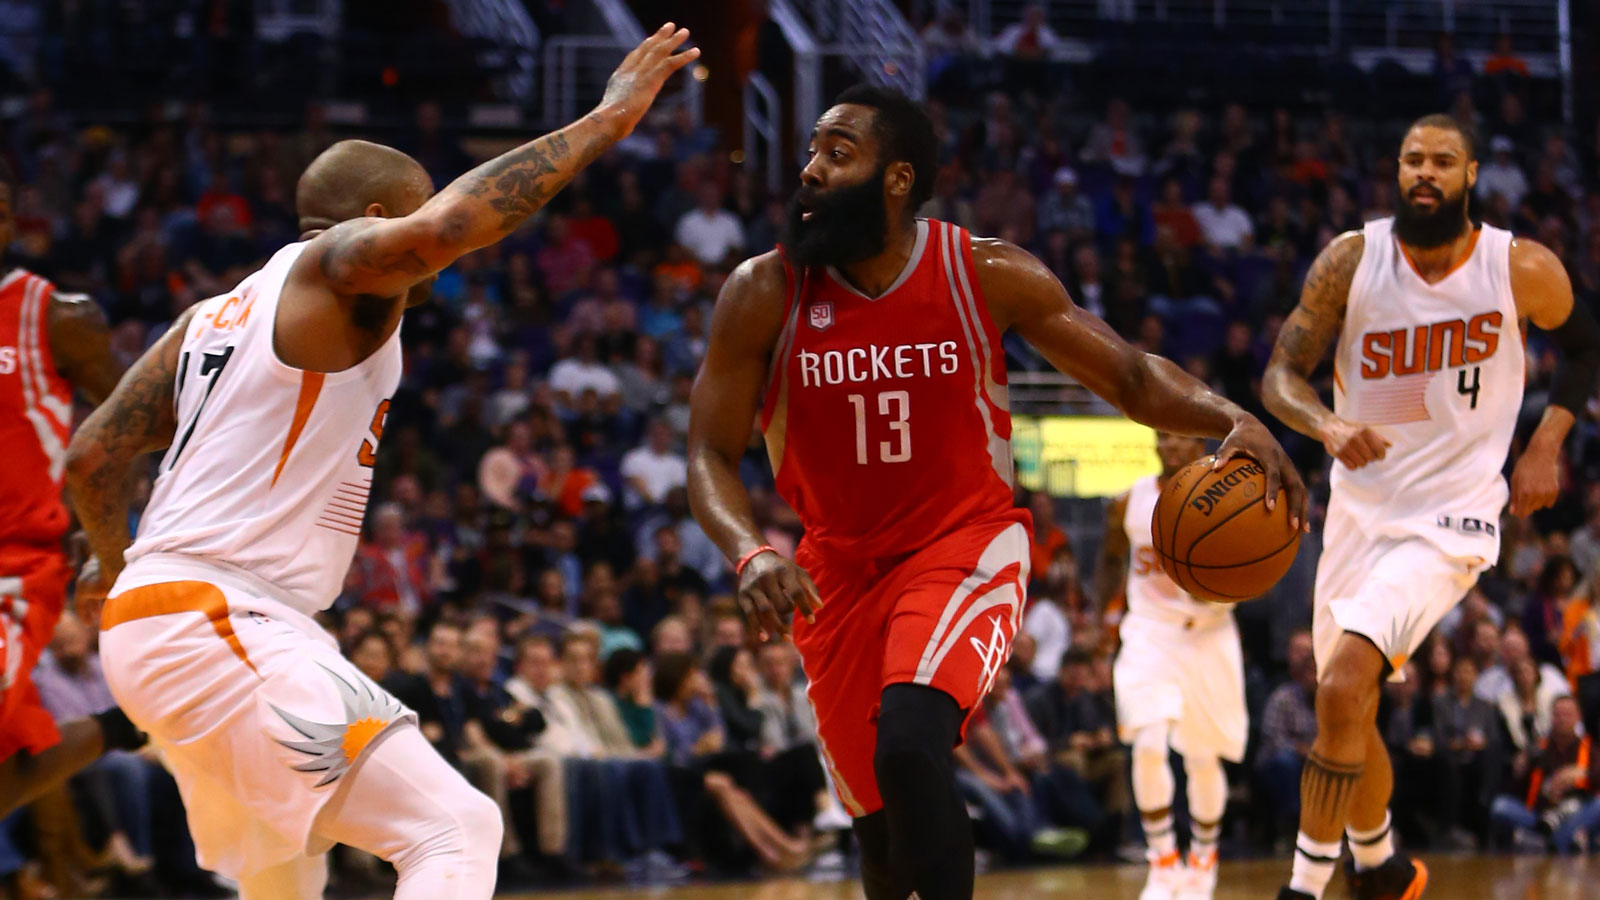 Suns open busy week with defensive test vs. Rockets